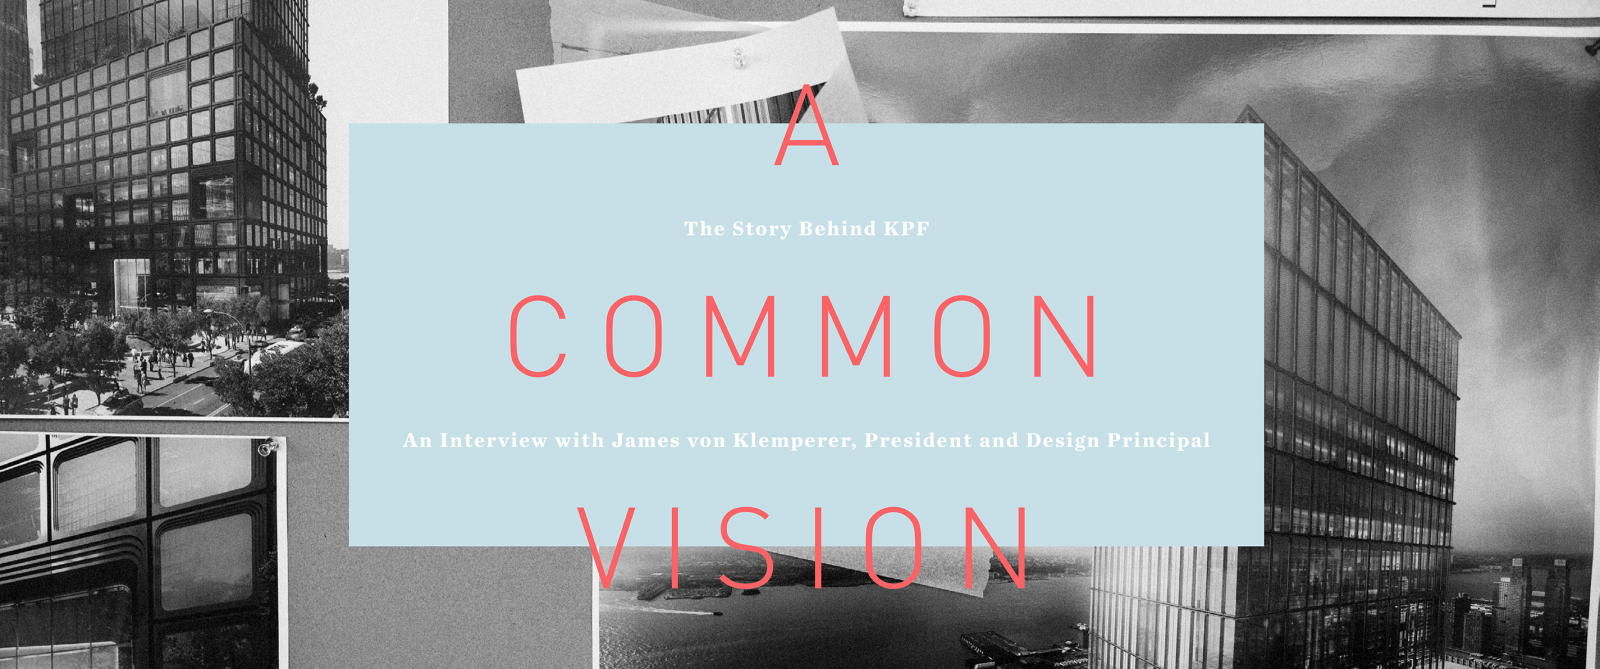 A Common Vision: The Story Behind KPF